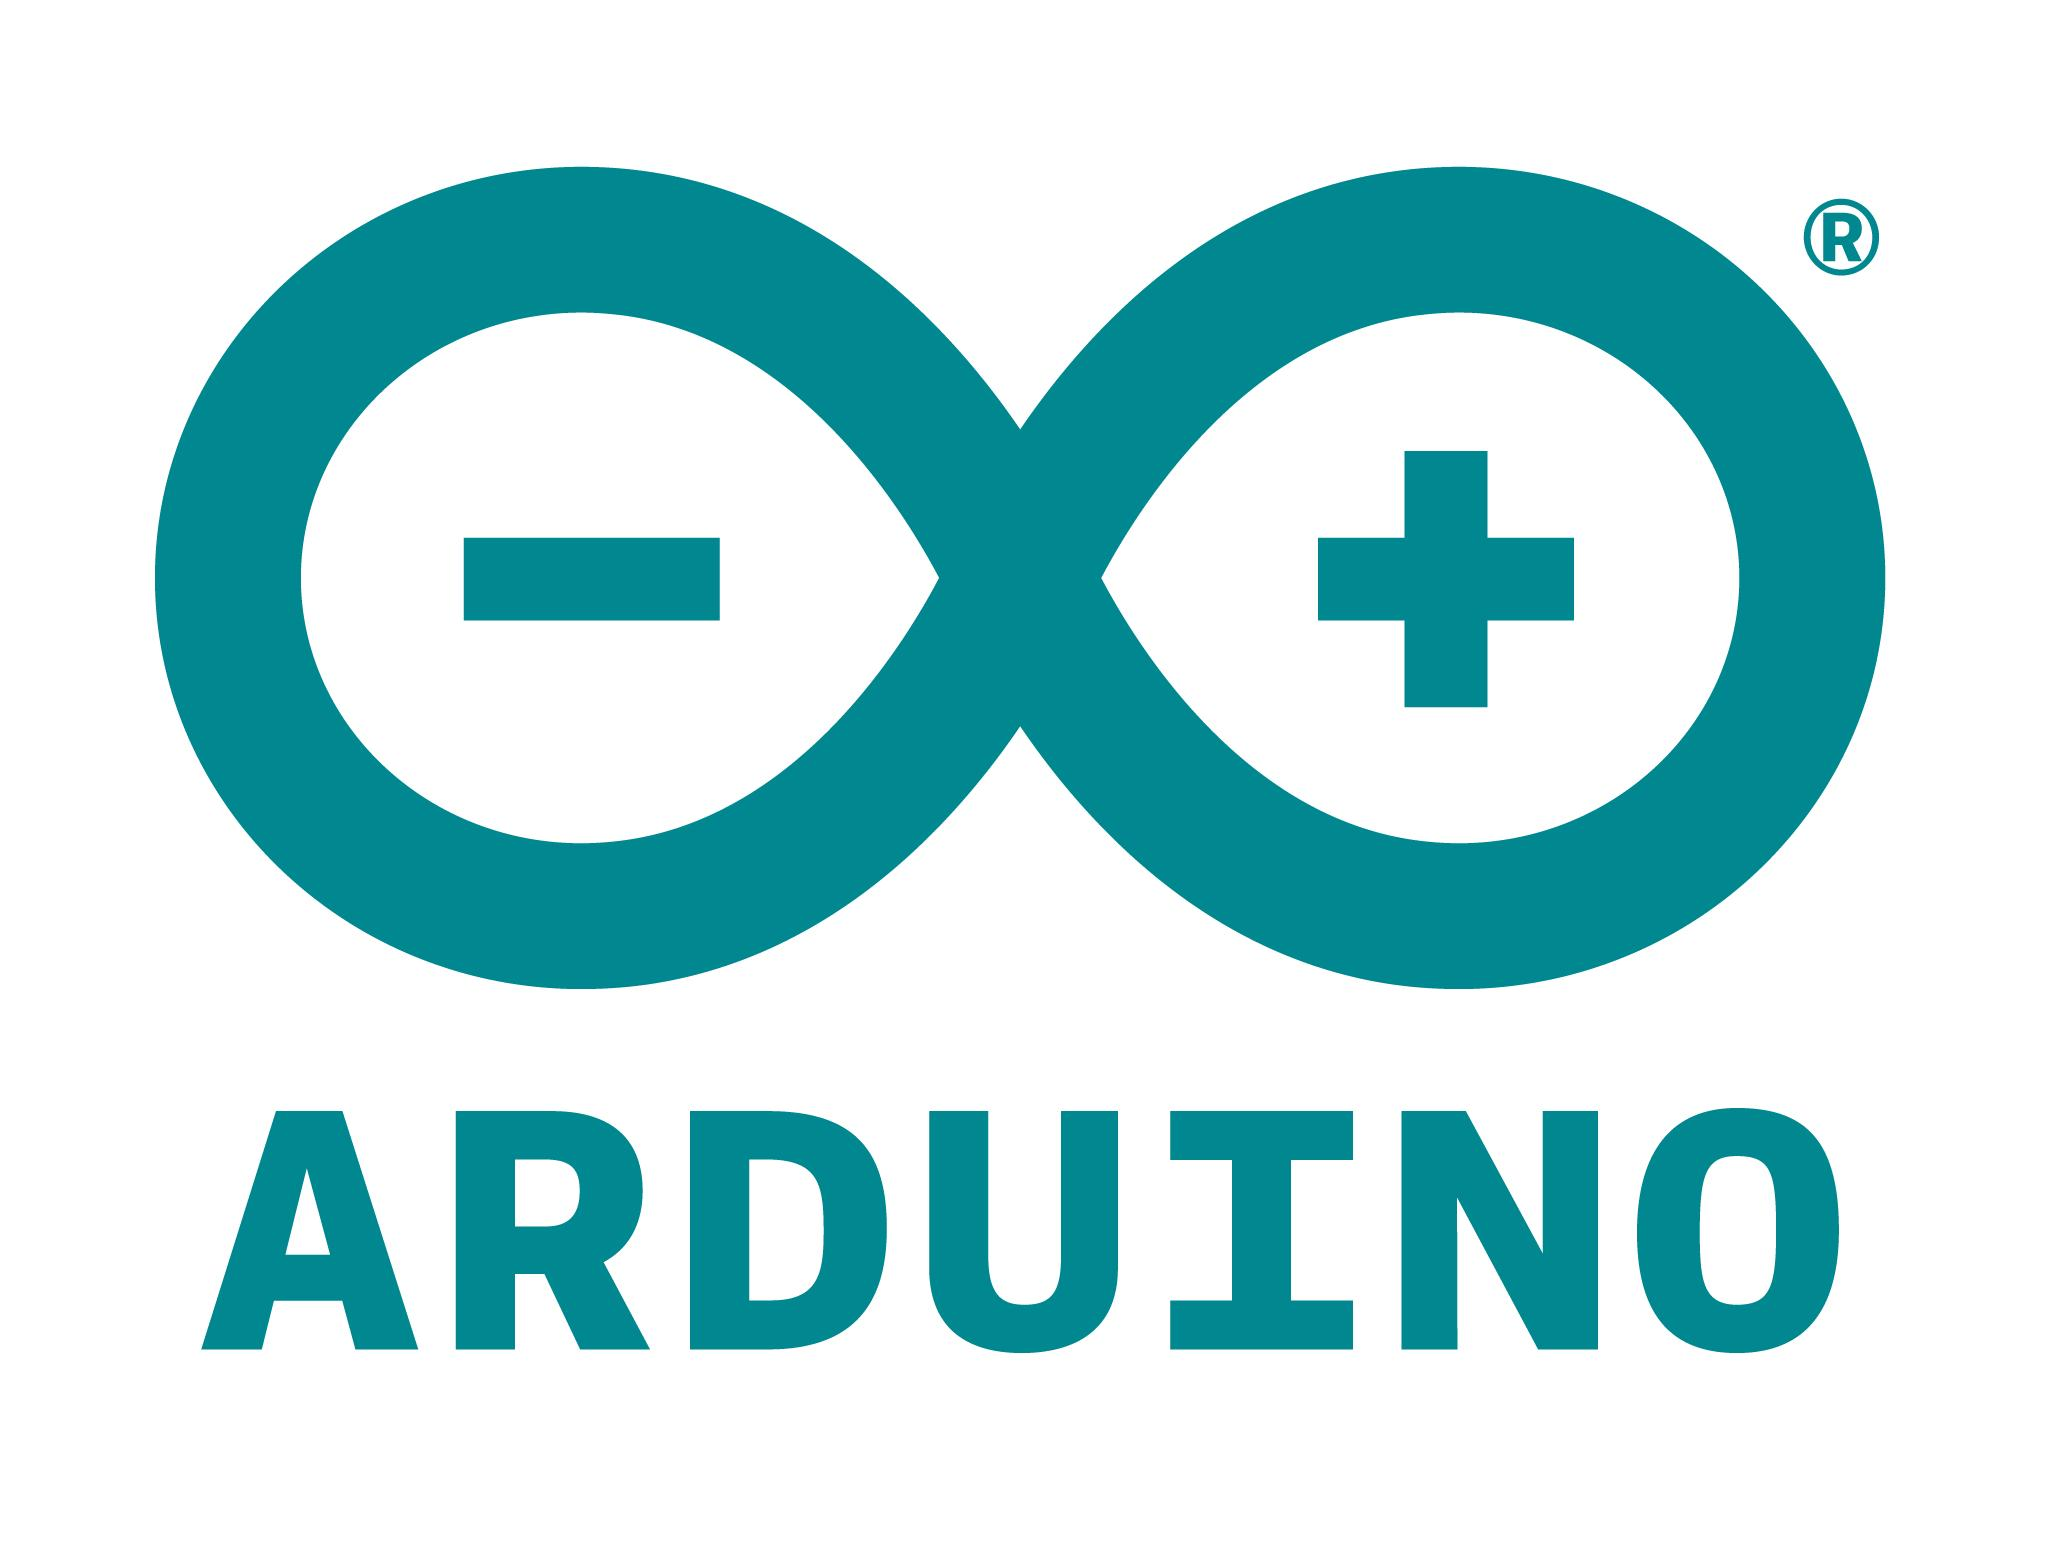 Arduino IoT Cloud : the revolution of the next IoT world